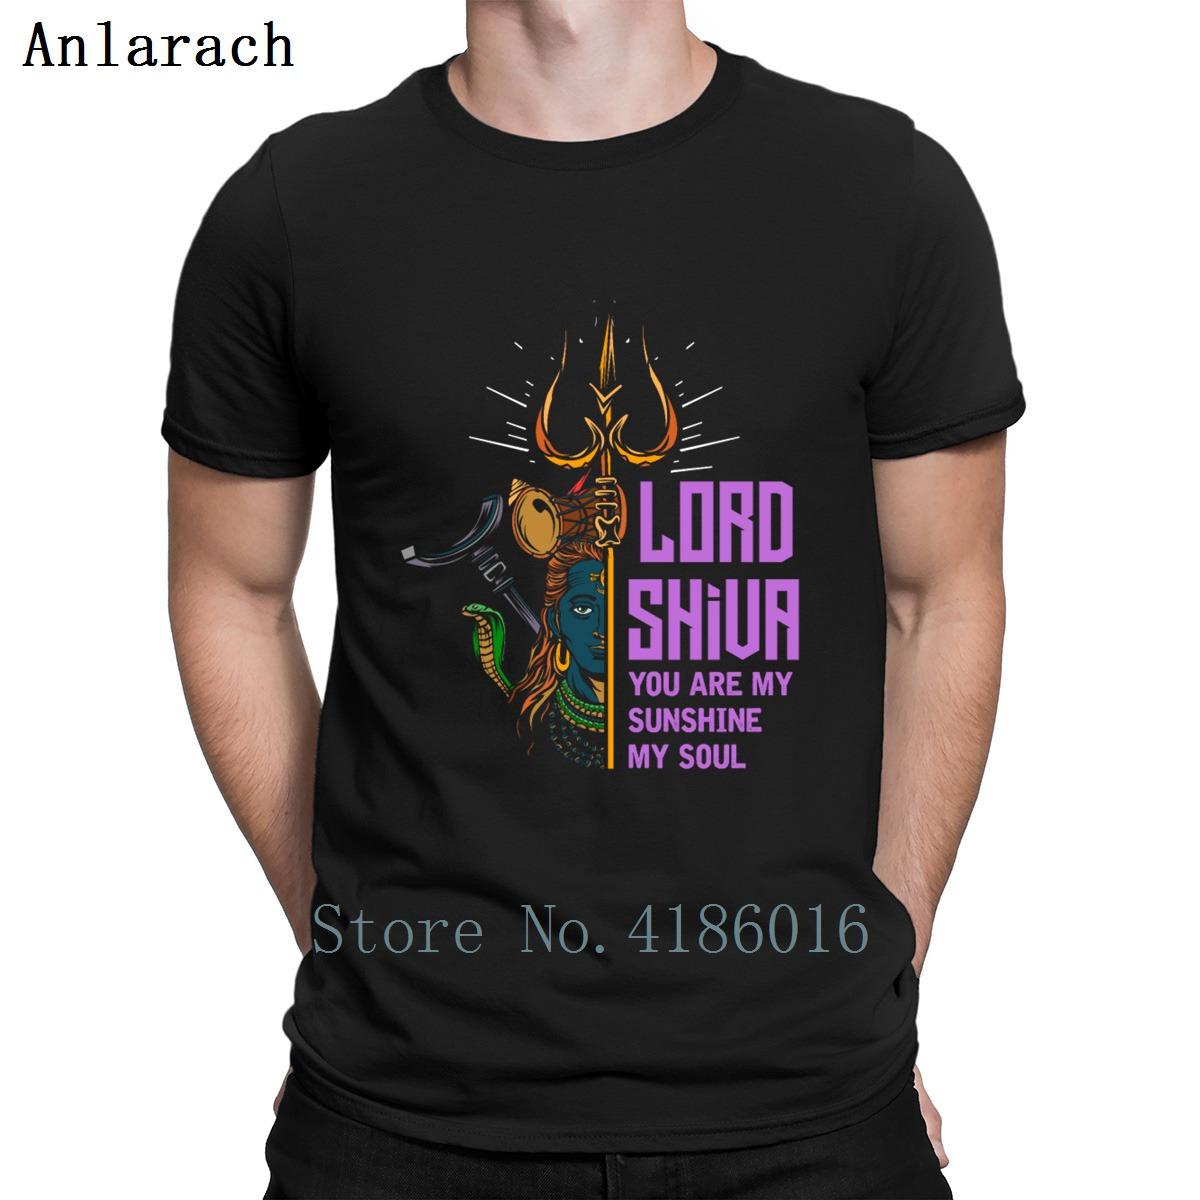 64582bc5 Shiva Hindu Gods Gift T Shirt Leisure Summer Style Branded Customize Tshirt  Men Comfortable Famous Pop Top Tee O Neck-in T-Shirts from Men's Clothing  on ...